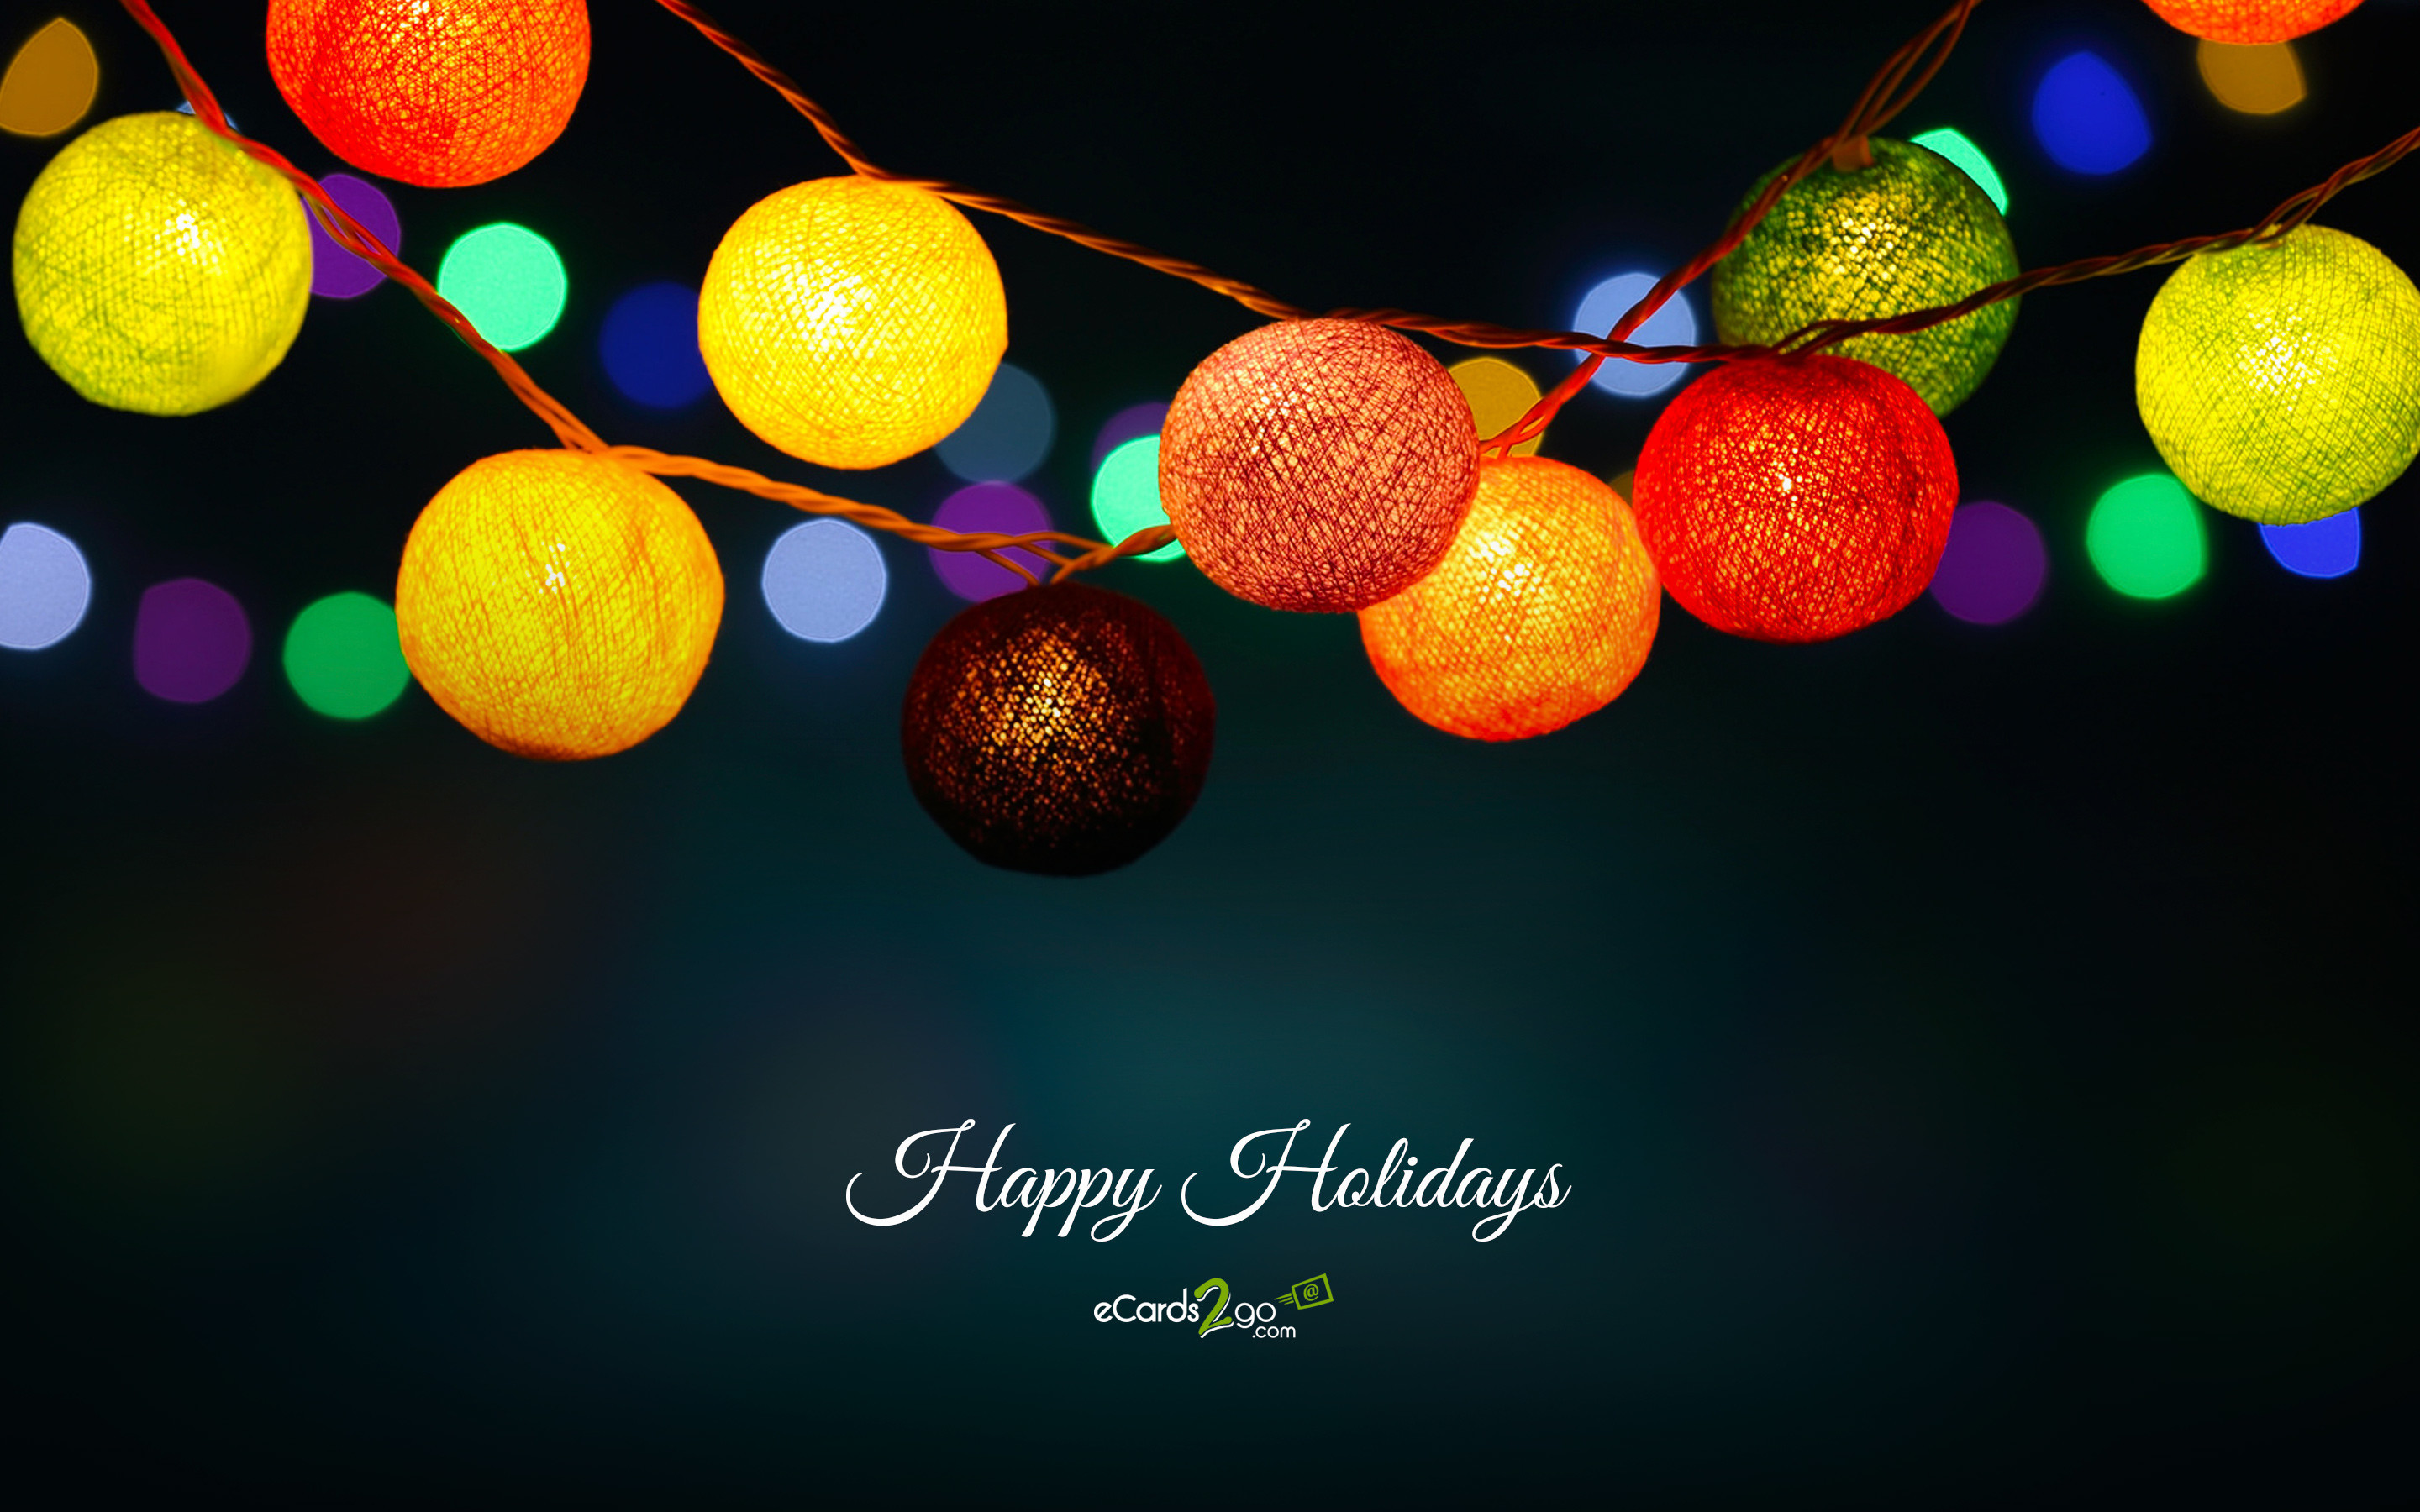 Cool Holiday Desktop Wallpaper 69 images 2880x1800